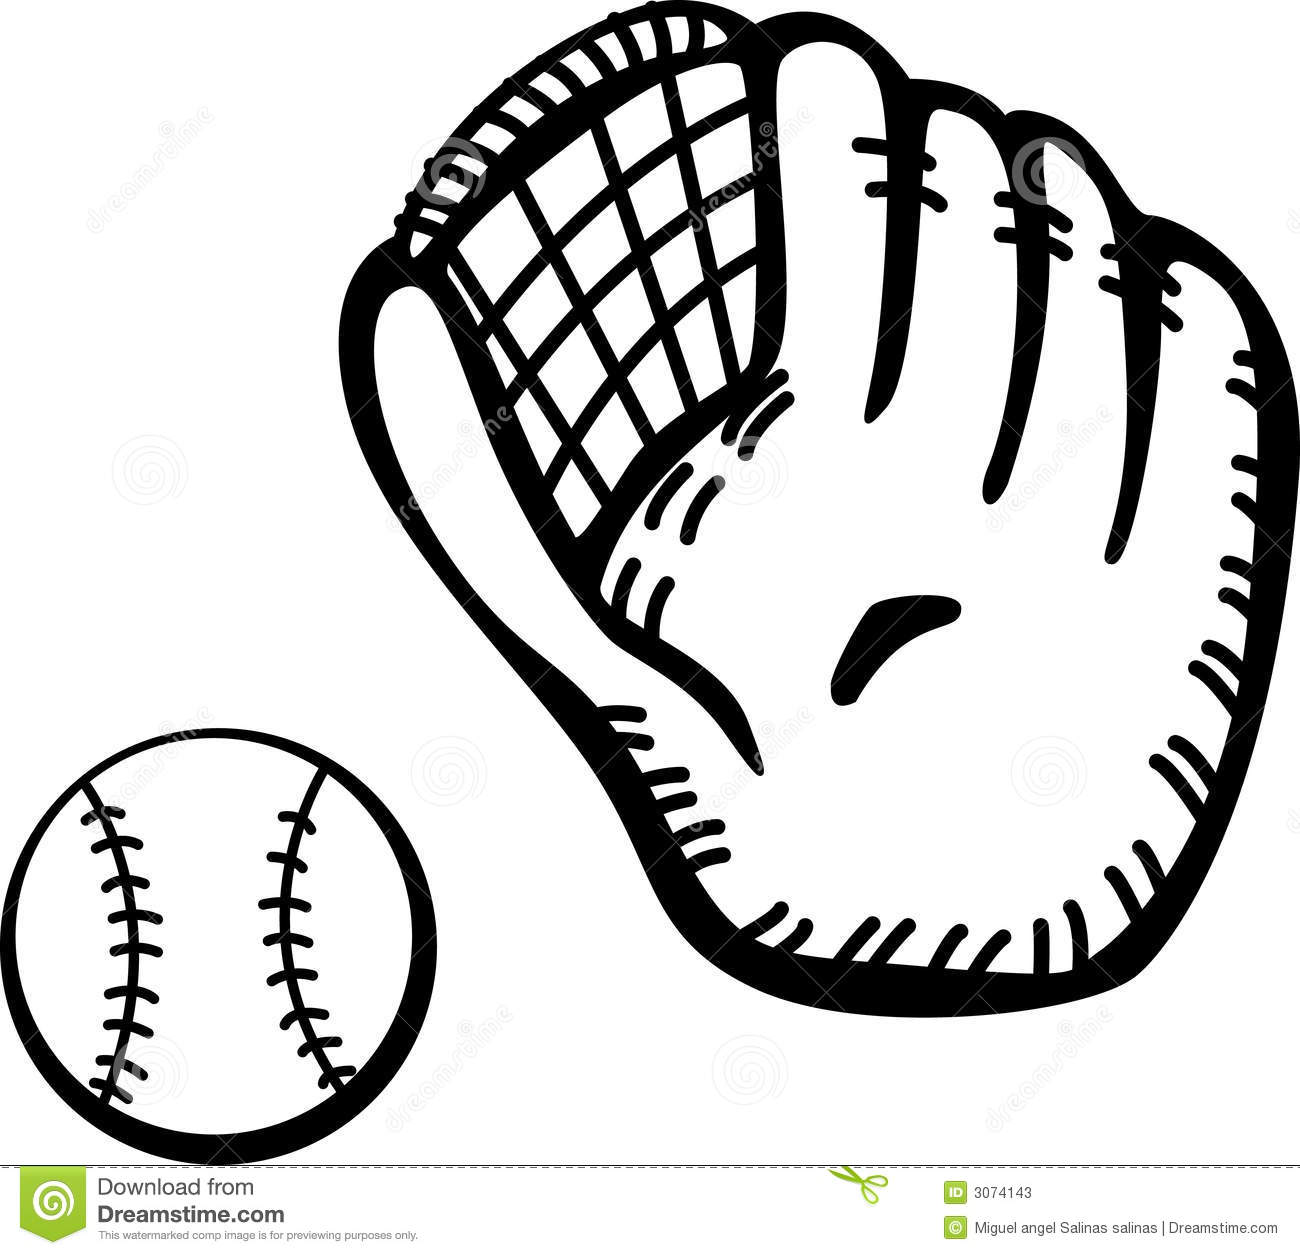 Softball Clipart Images